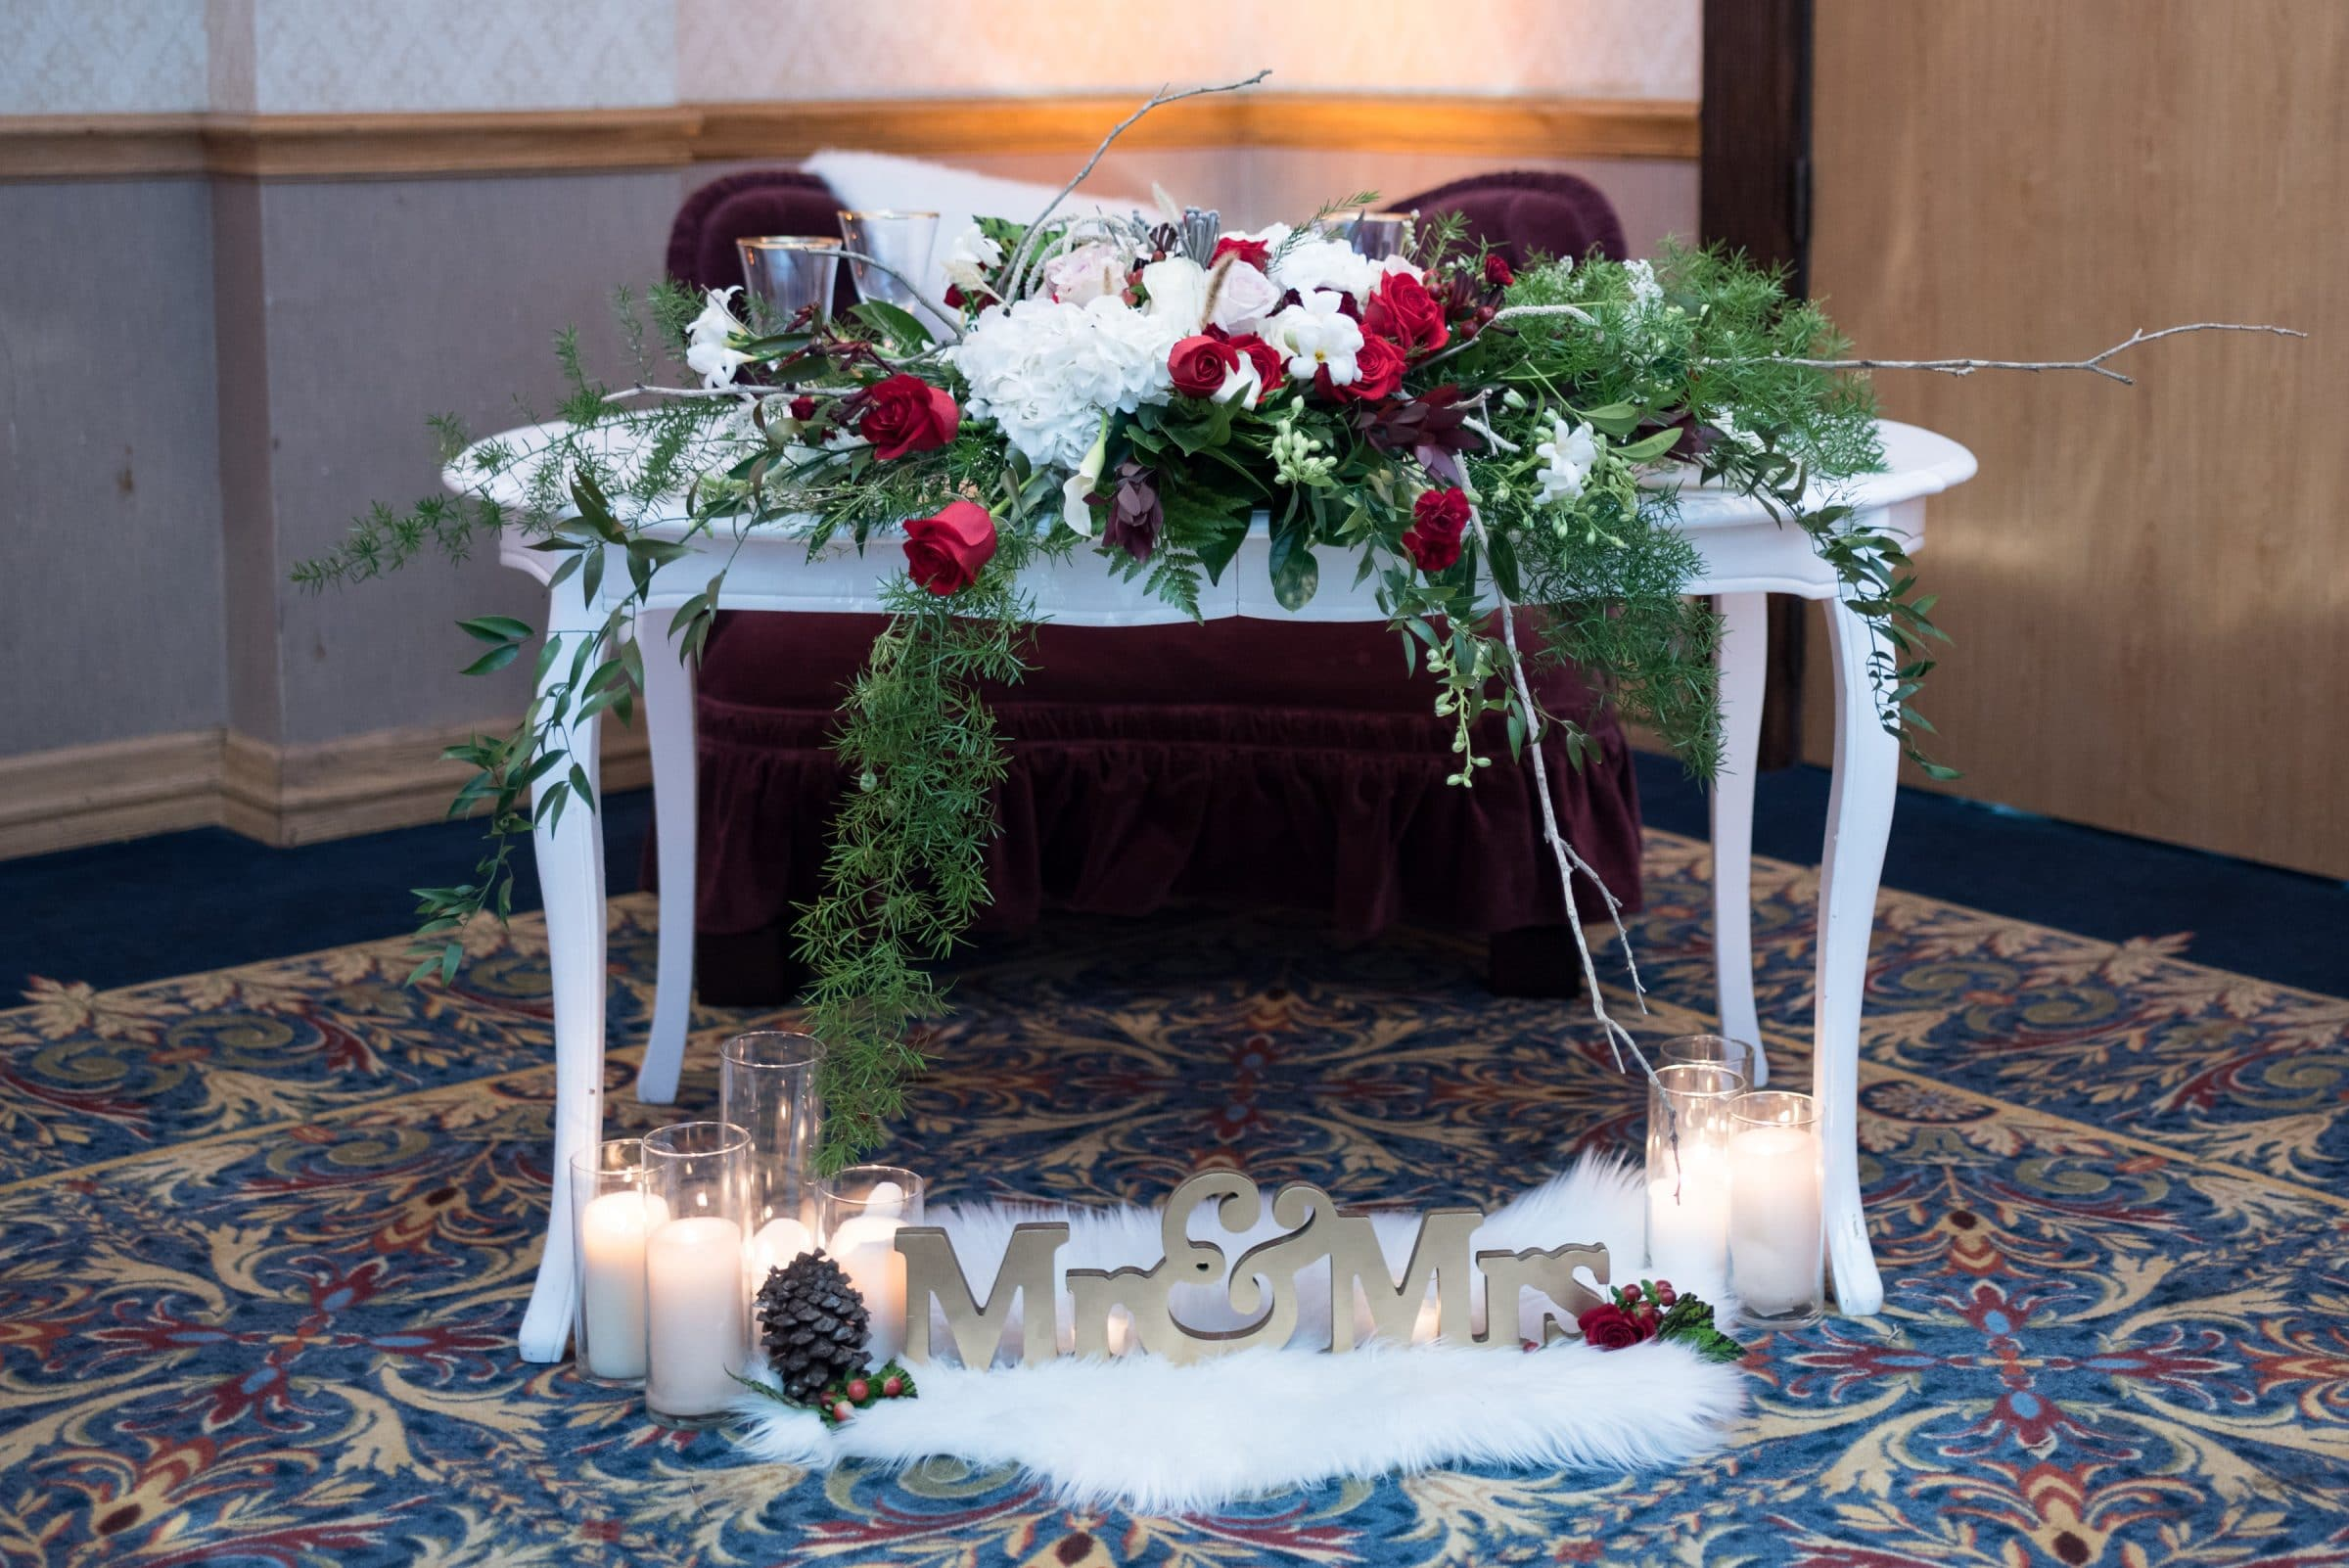 White table with white lighting draped in greenery and red roses